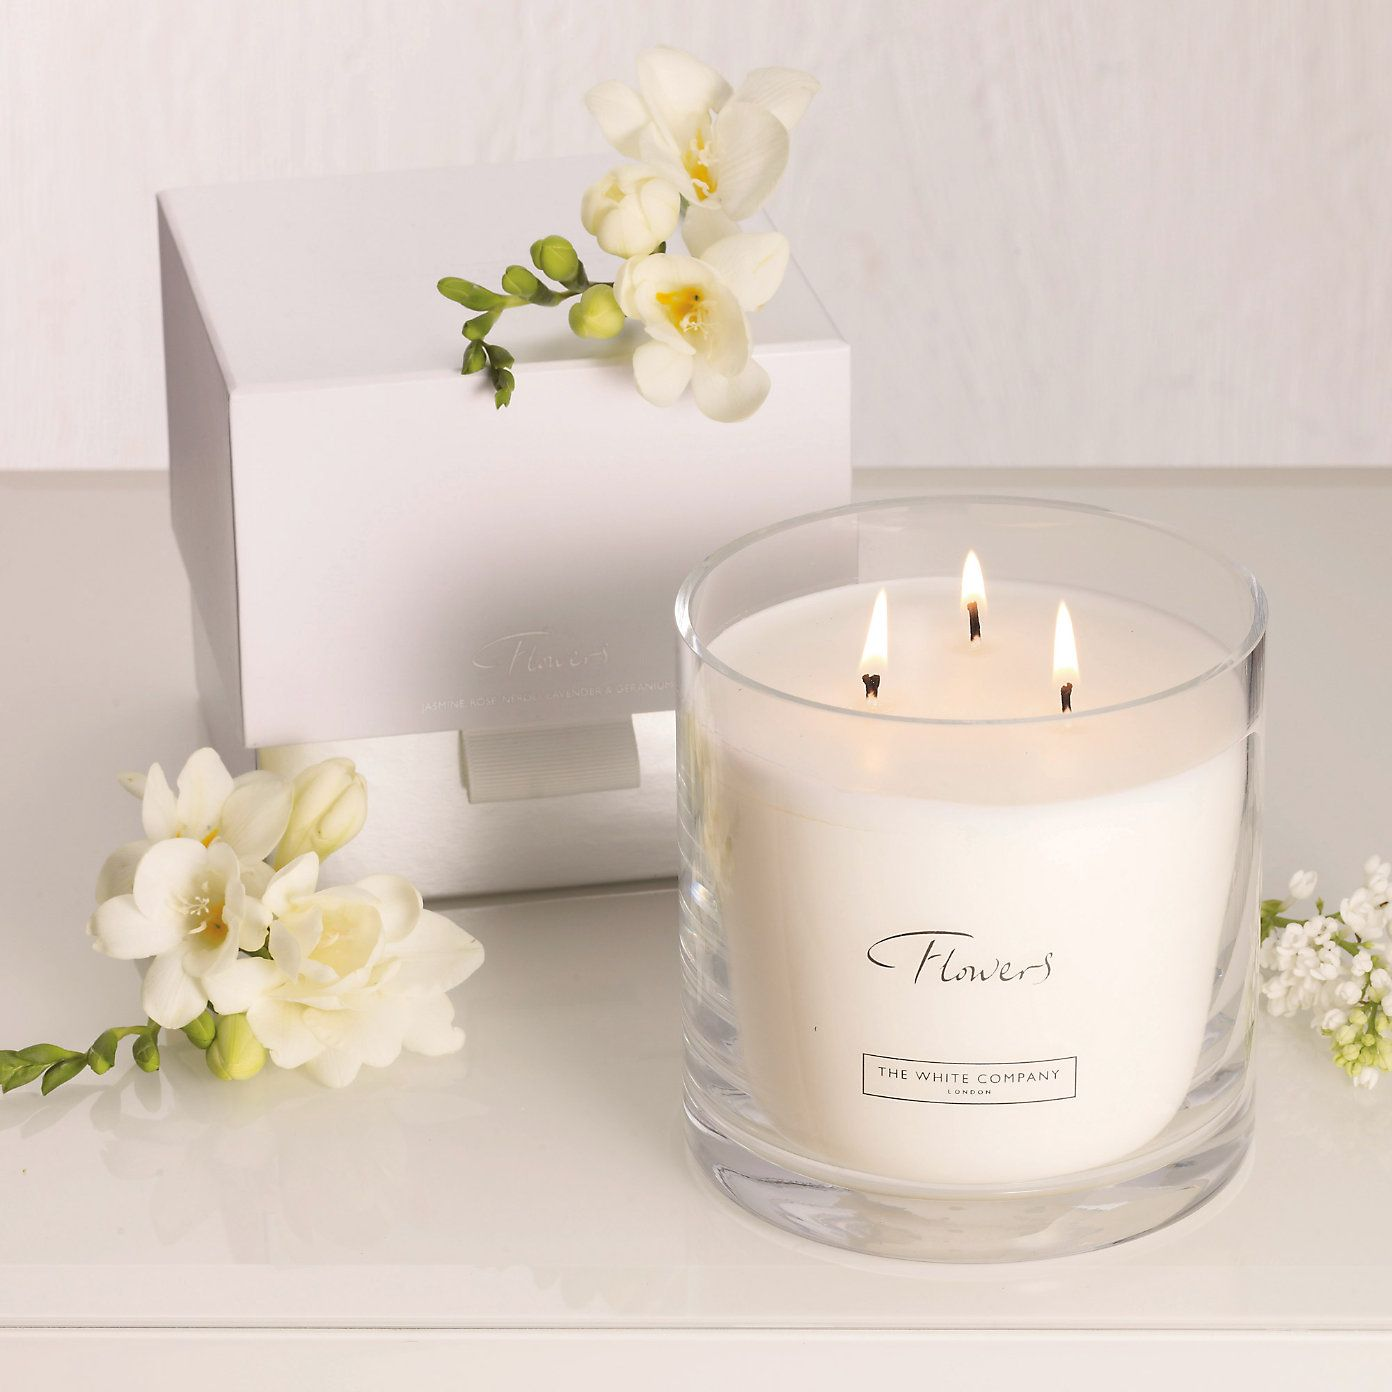 Buy candles fragrance candles flowers large 3 wick candle from buy candles fragrance candles flowers large 3 wick candle from the white company mightylinksfo